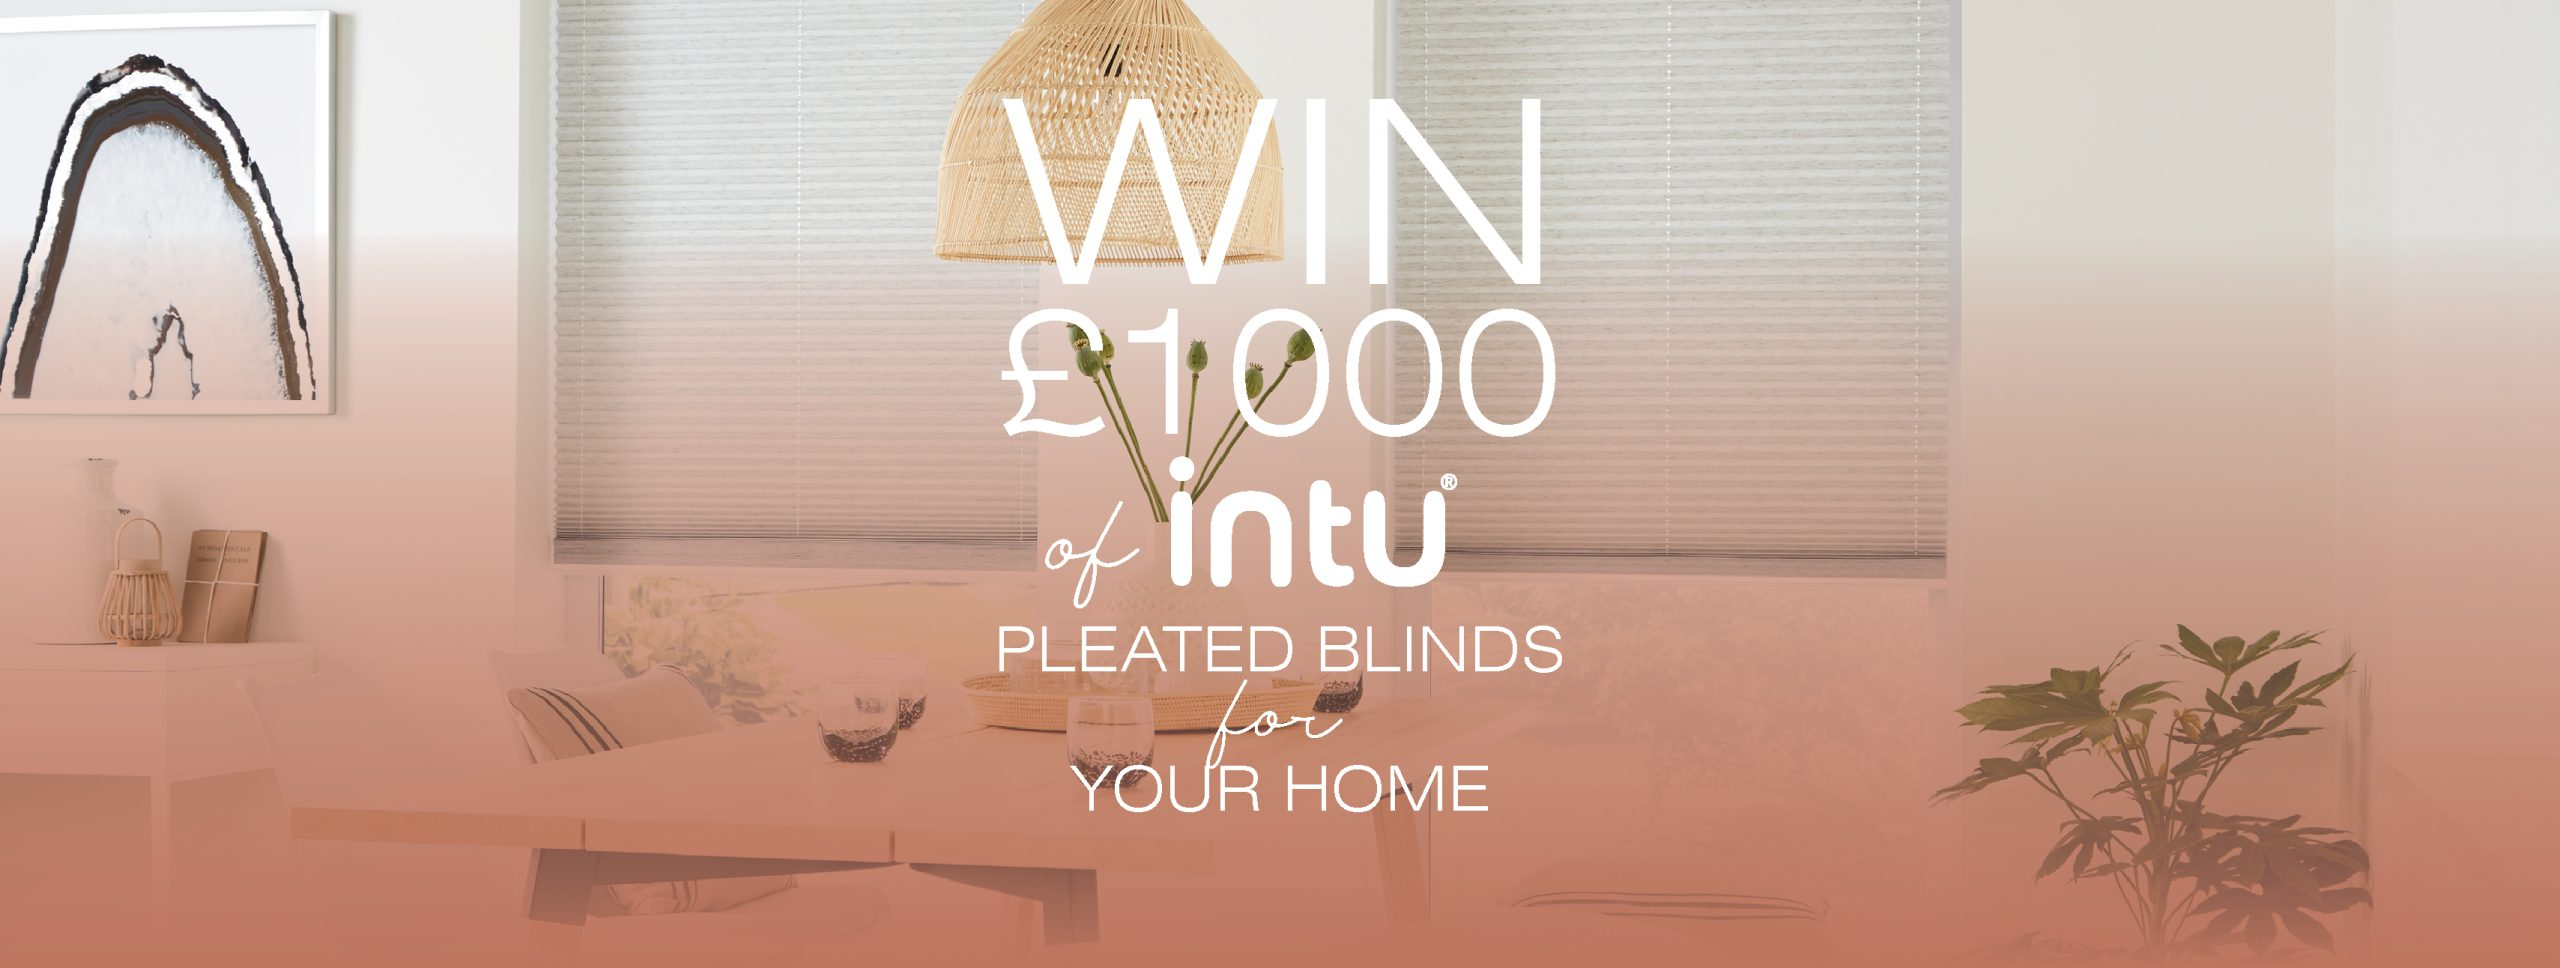 WIN! £1,000 worth of intu® pleated blinds